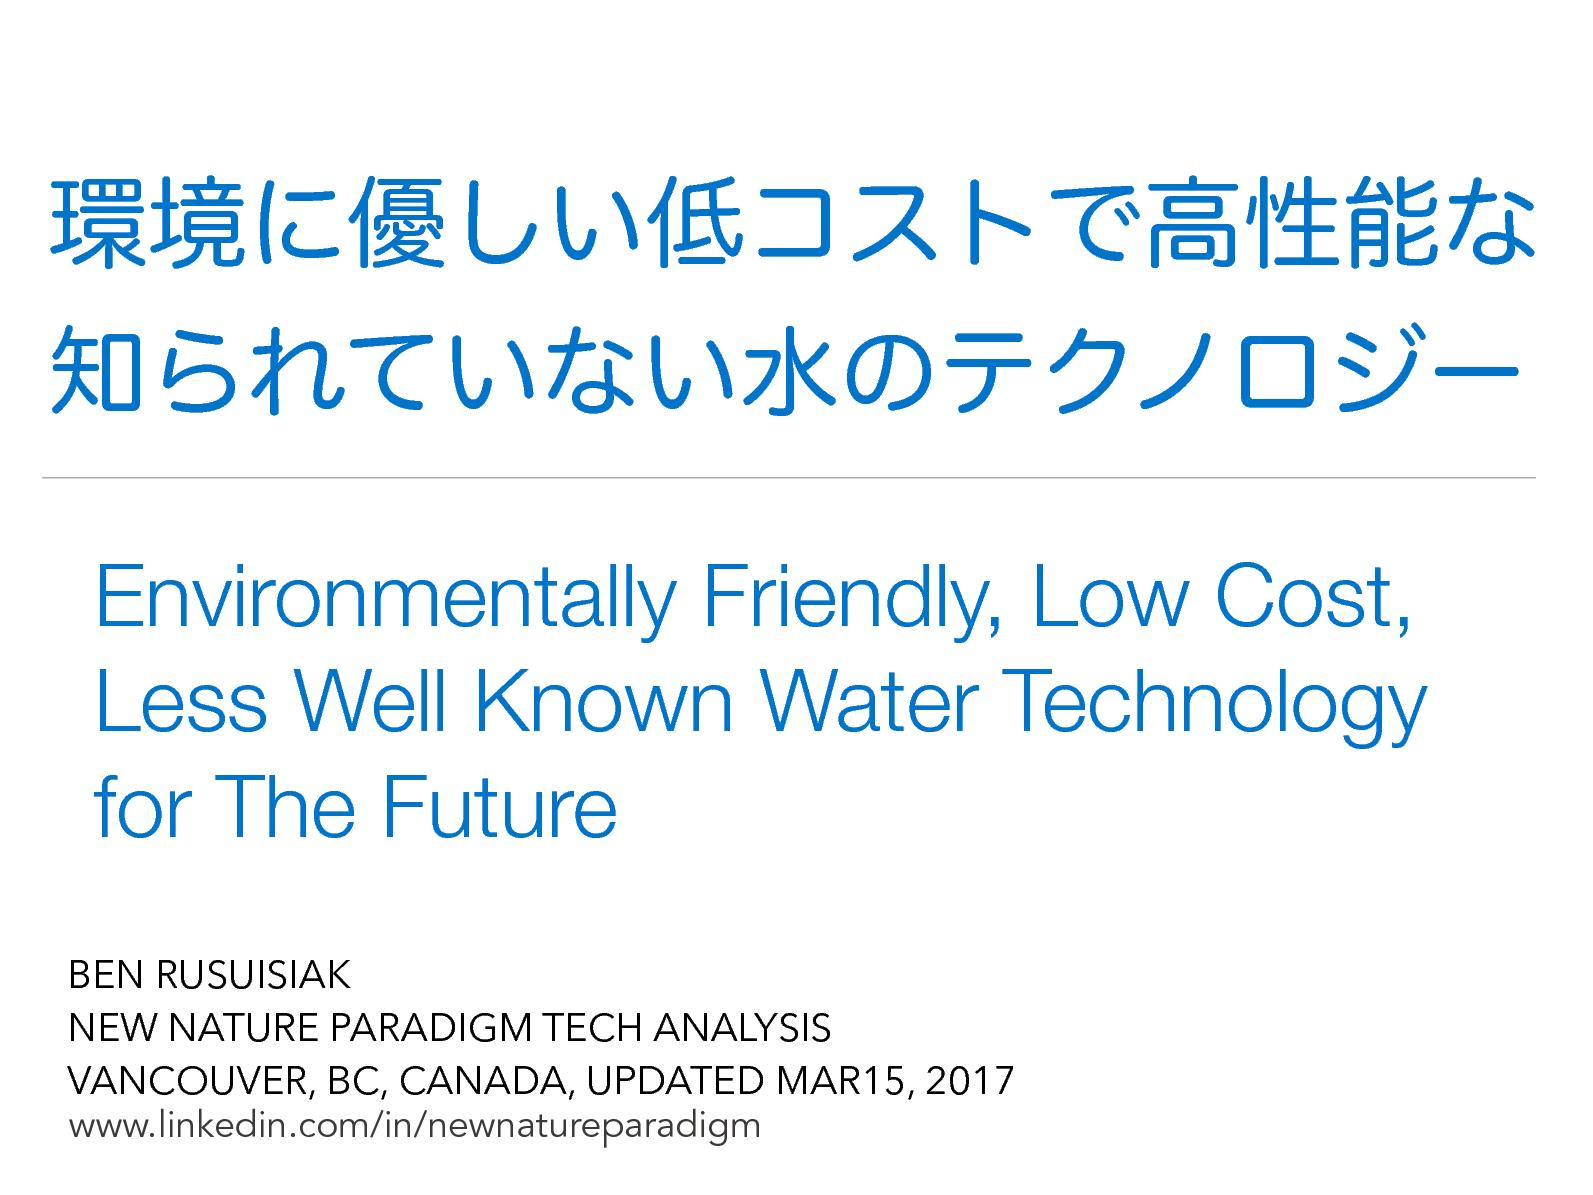 Calaméo - 環境に優しい低コストで有益な, 知られていない水のテクノロジー / Environmentally Friendly, Low  Cost, Less Well Known Water Technology for The Future